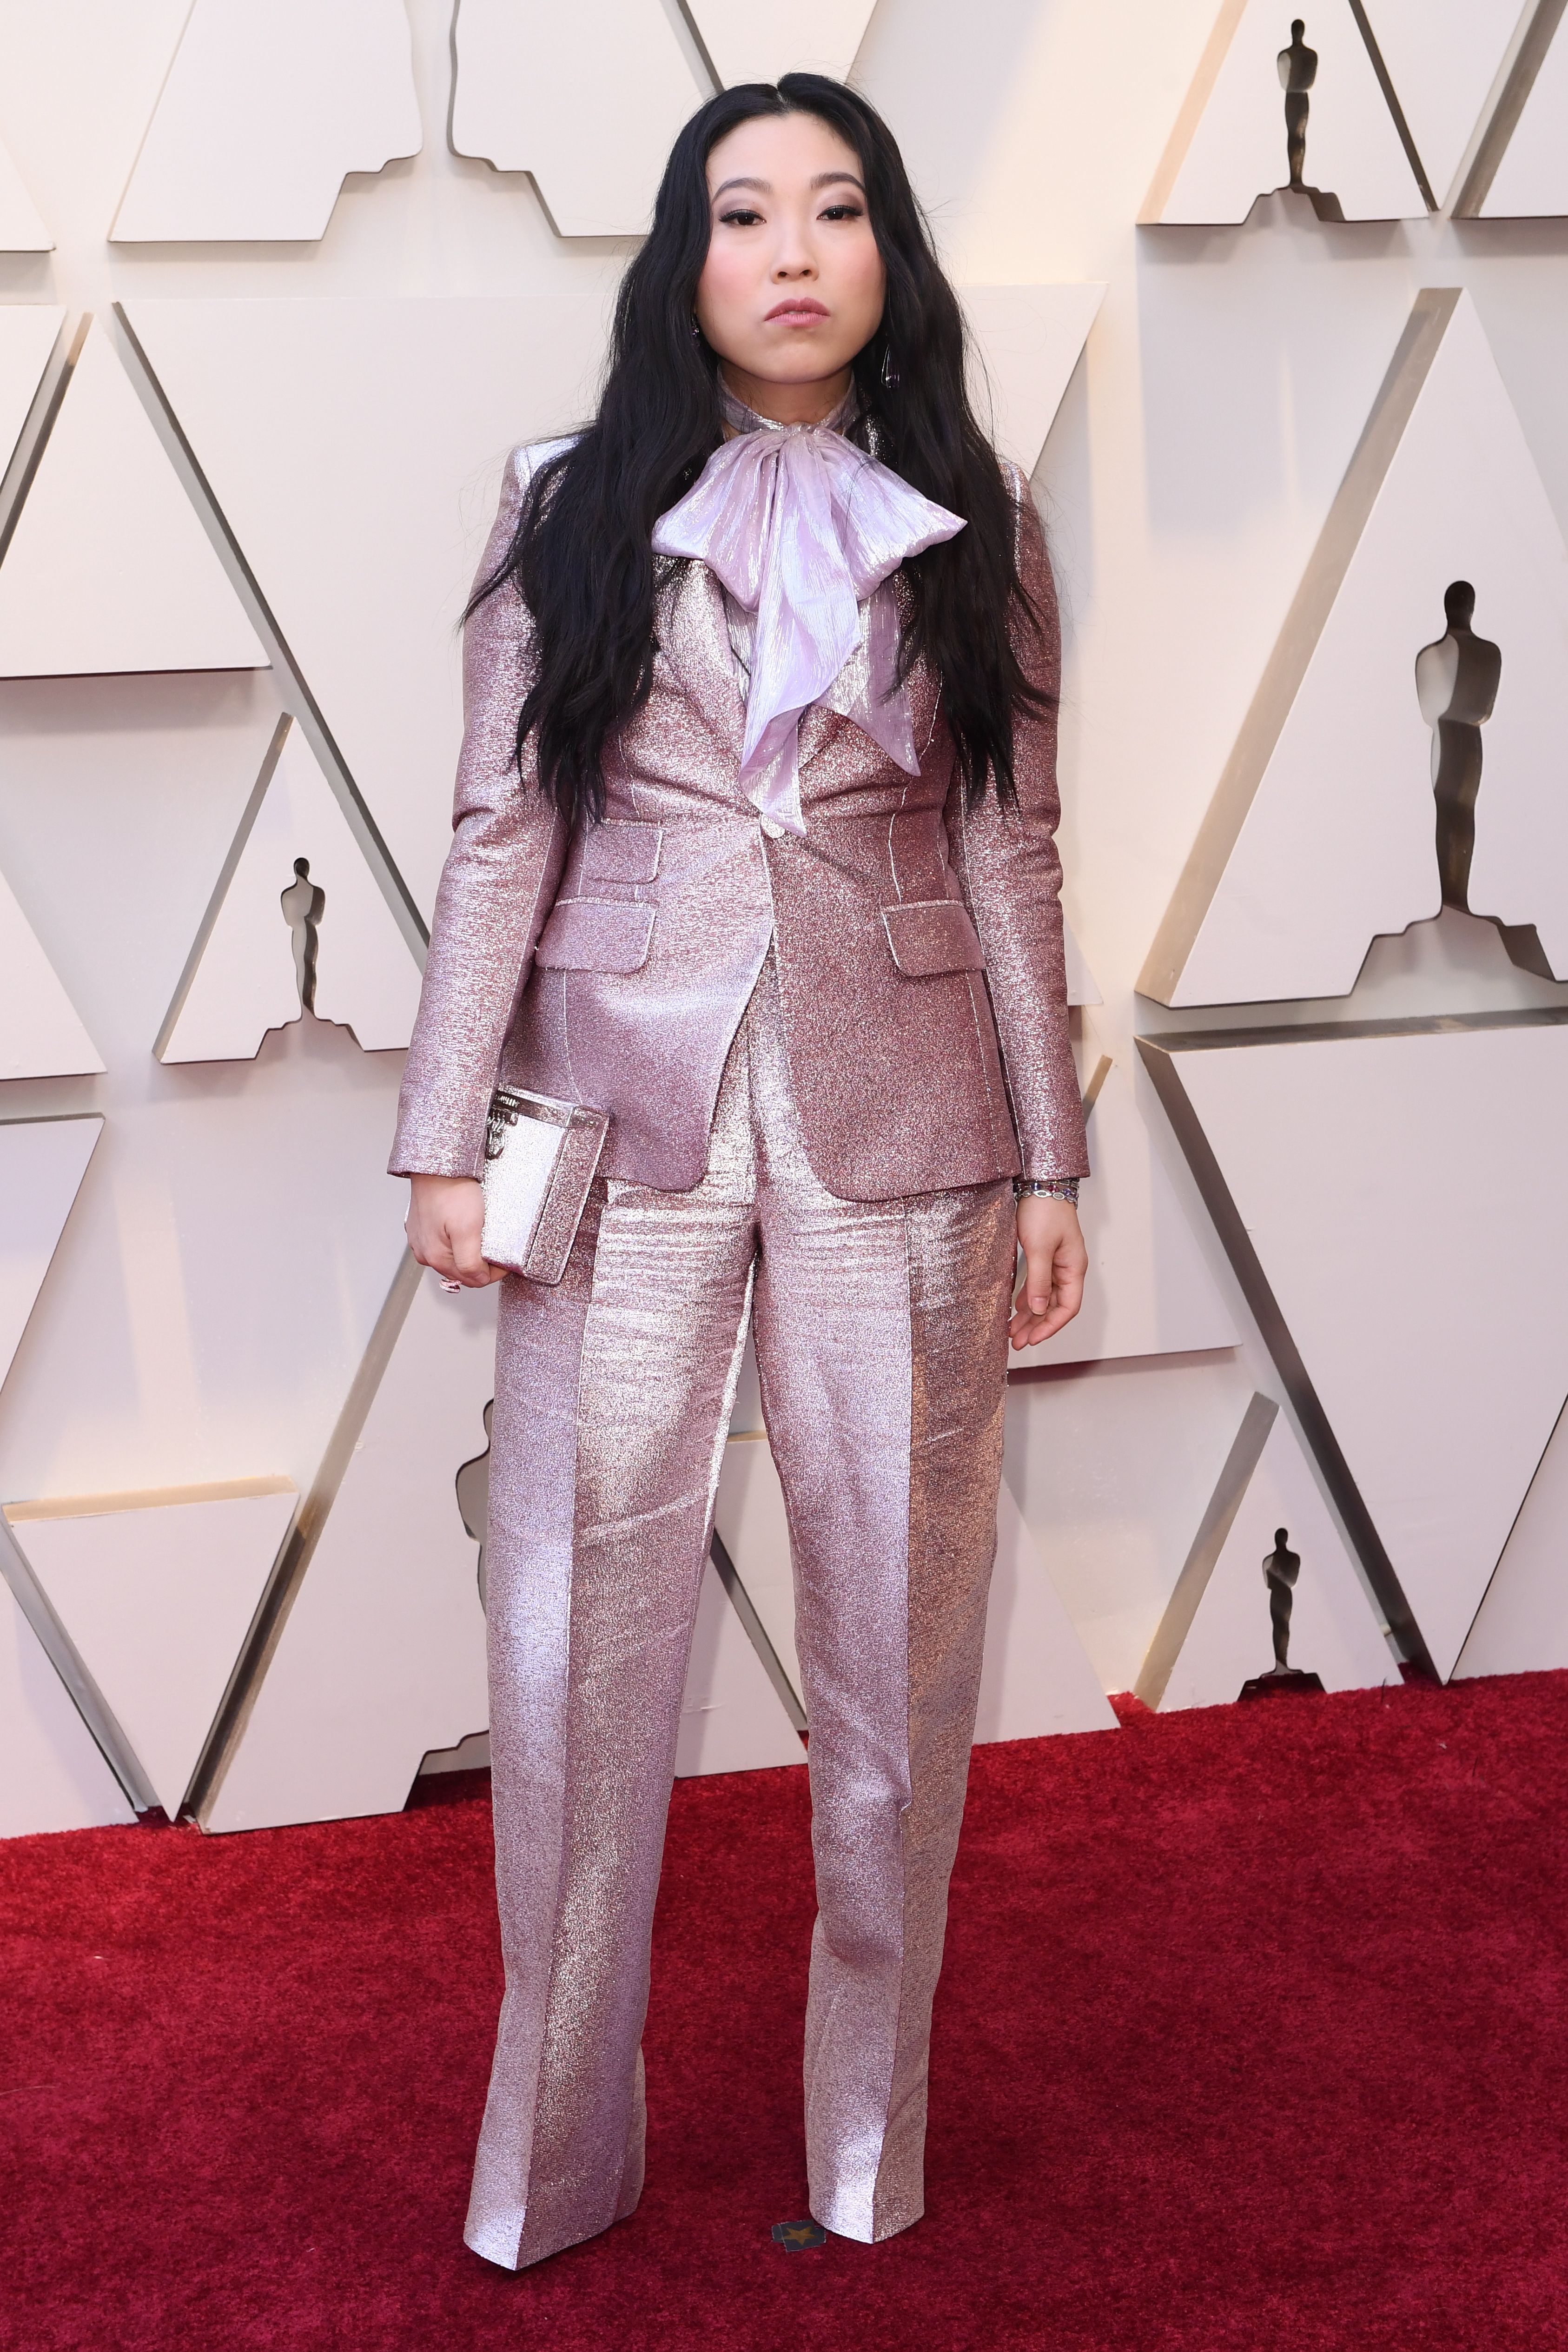 10112734cw Awkwafinas Head to Toe Pink 2019 Oscars Ensemble Is Cooler Than You Ever Could Imagine